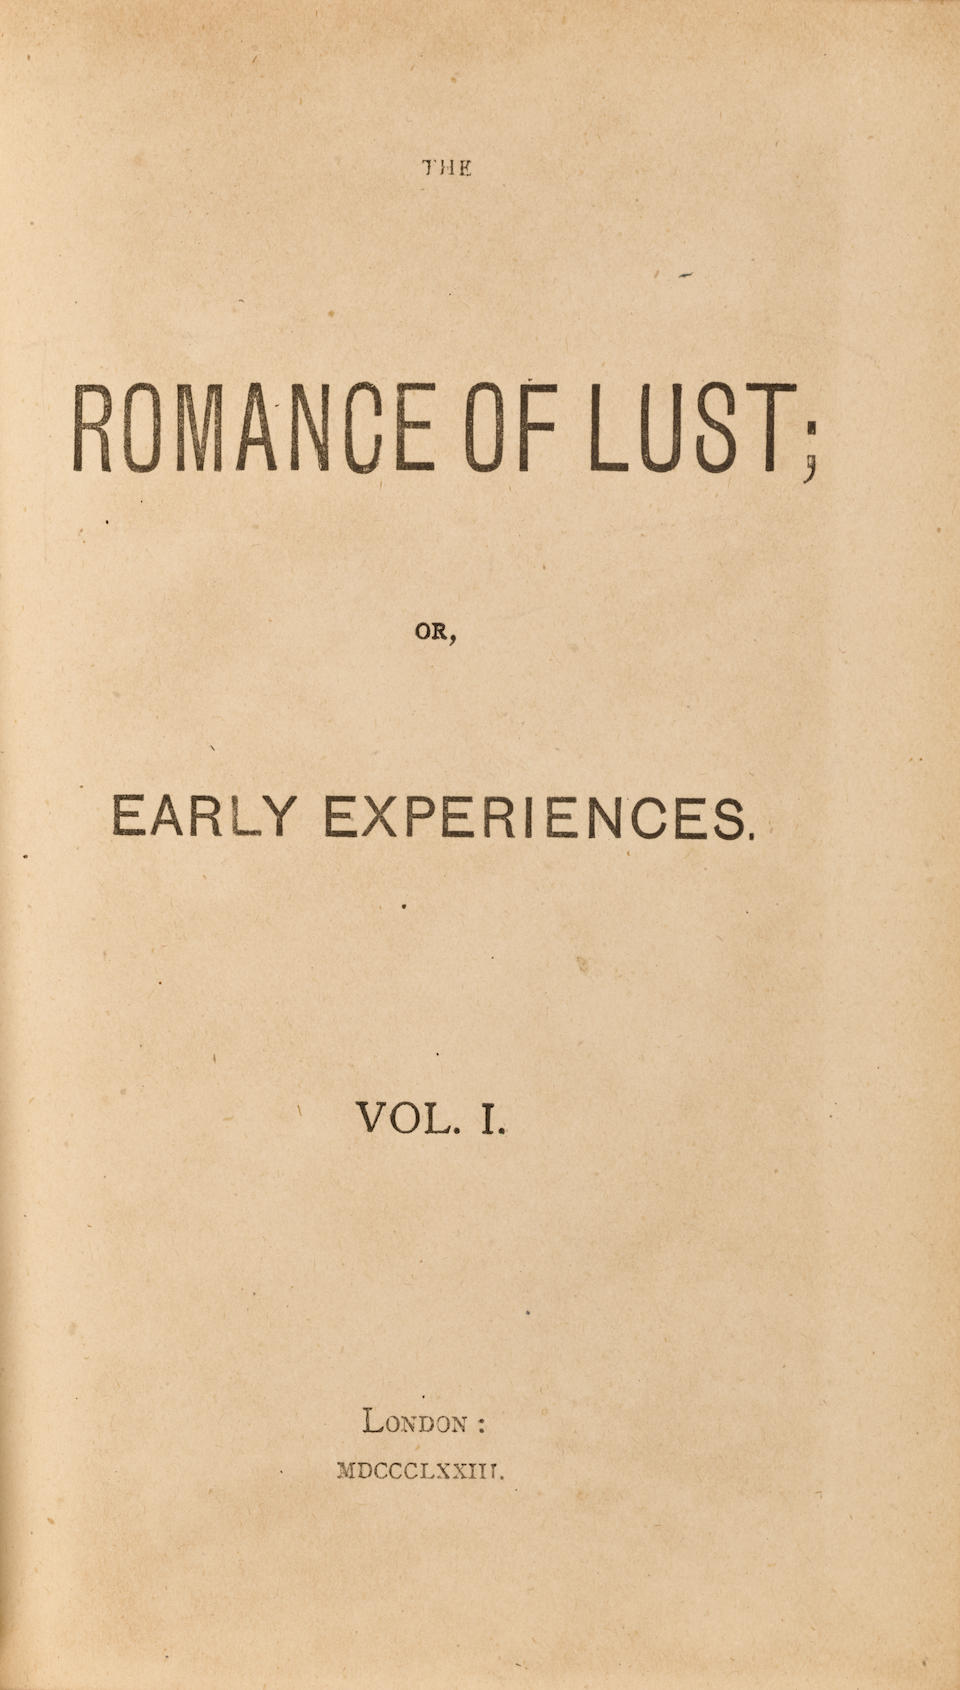 [POTTER, WILLIAM SIMPSON. 1805-1879.] The Romance of Lust; or, Early Experiences.  London: [William Lazenby] 1873-1876.